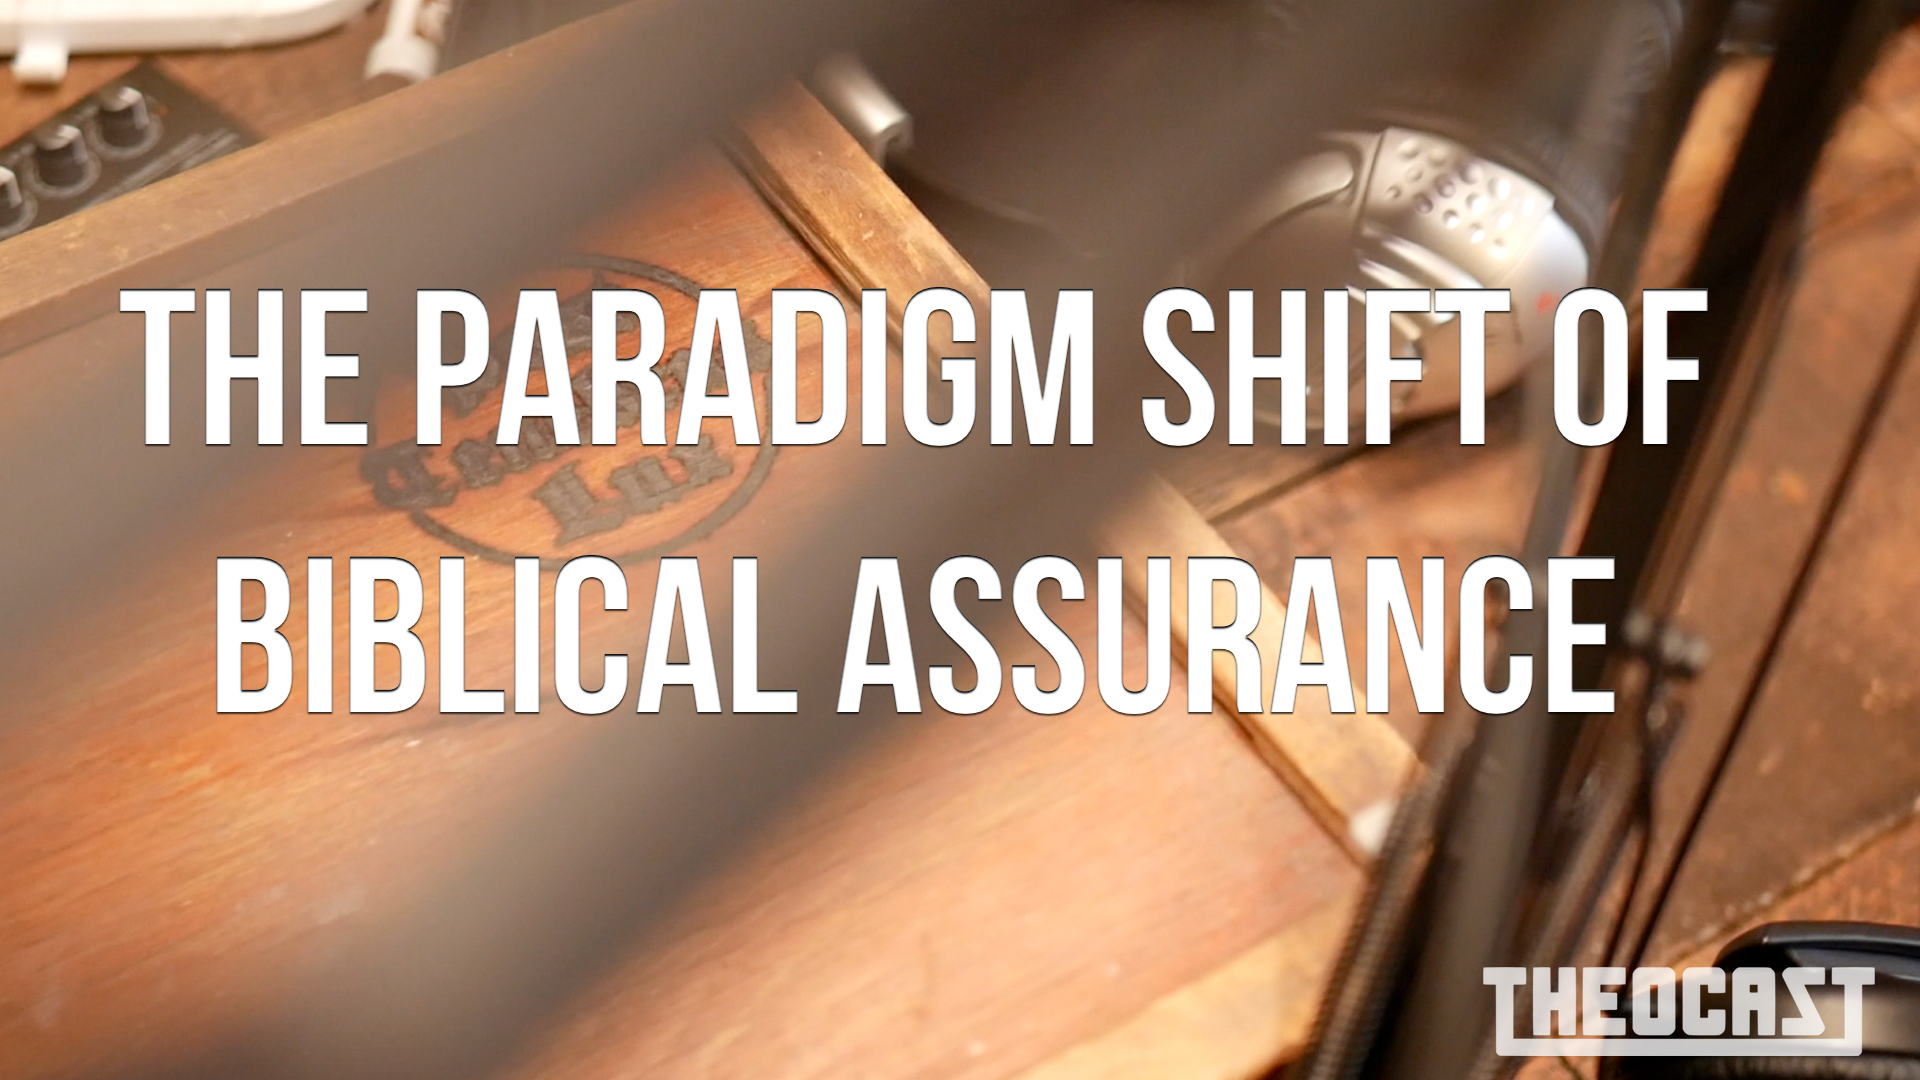 The Paradigm Shift of Biblical Assurance